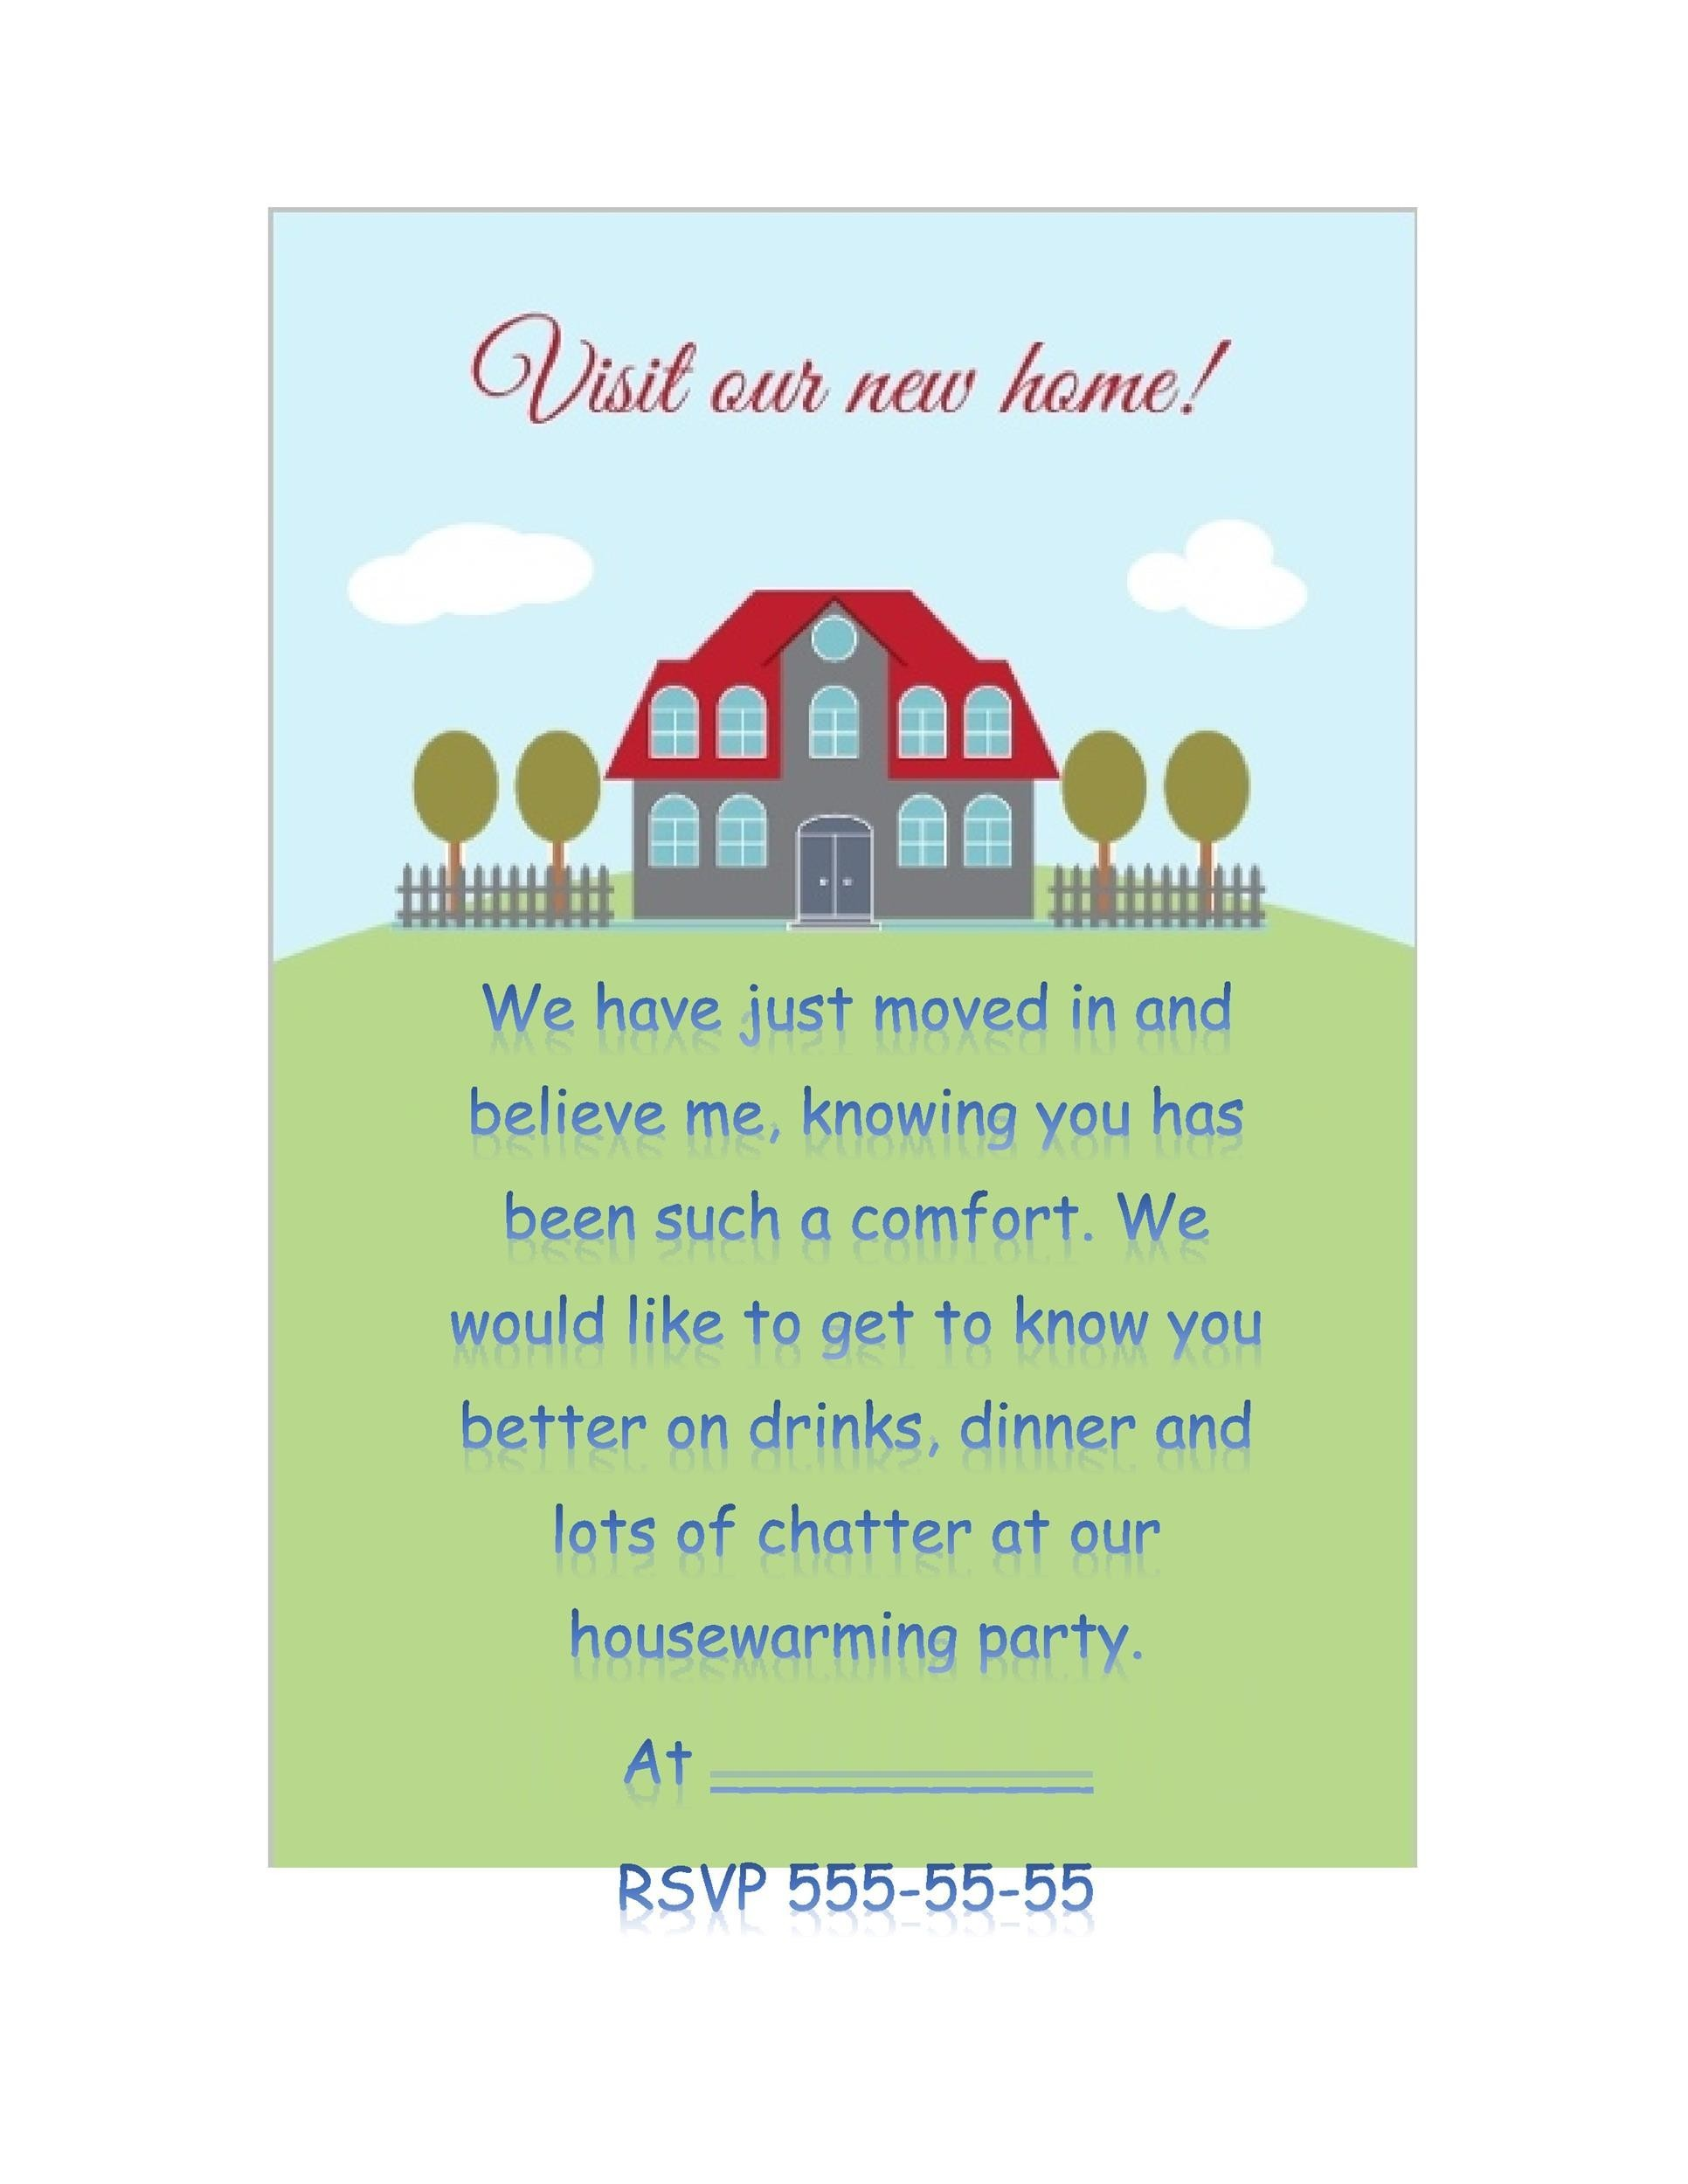 picture regarding Printable Housewarming Invitations referred to as 40+ Absolutely free Printable Housewarming Get together Invitation Templates